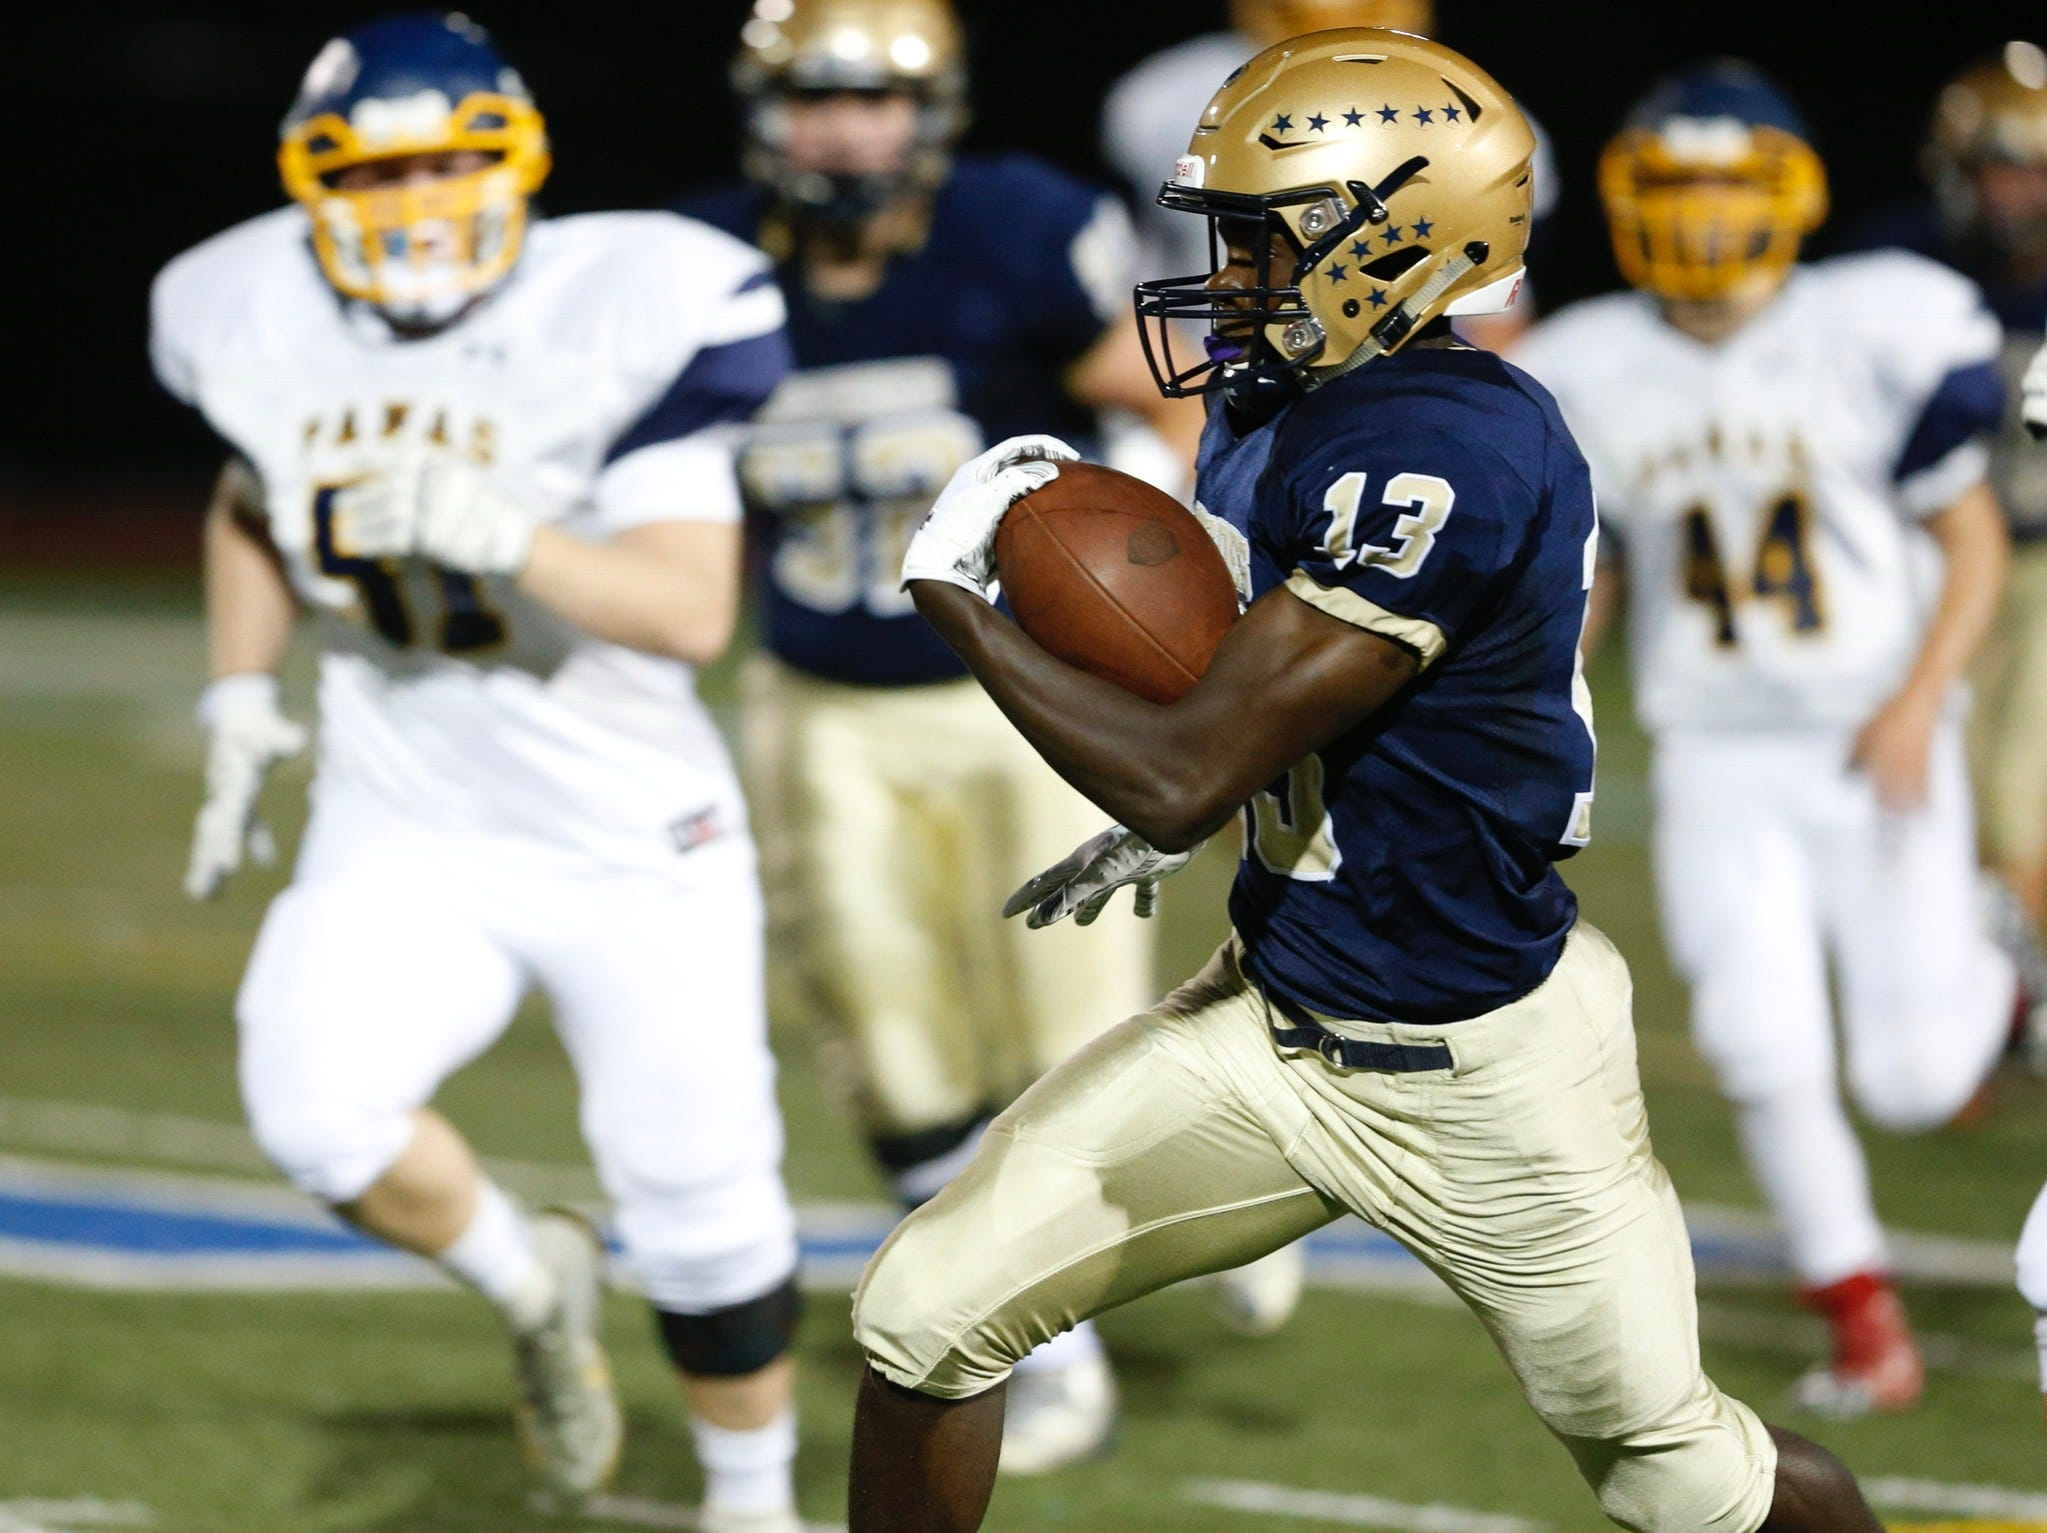 Lourdes' Jaheim Jones carries the ball in the first quarter of Friday's game versus Panas on Sept. 21, 2018.